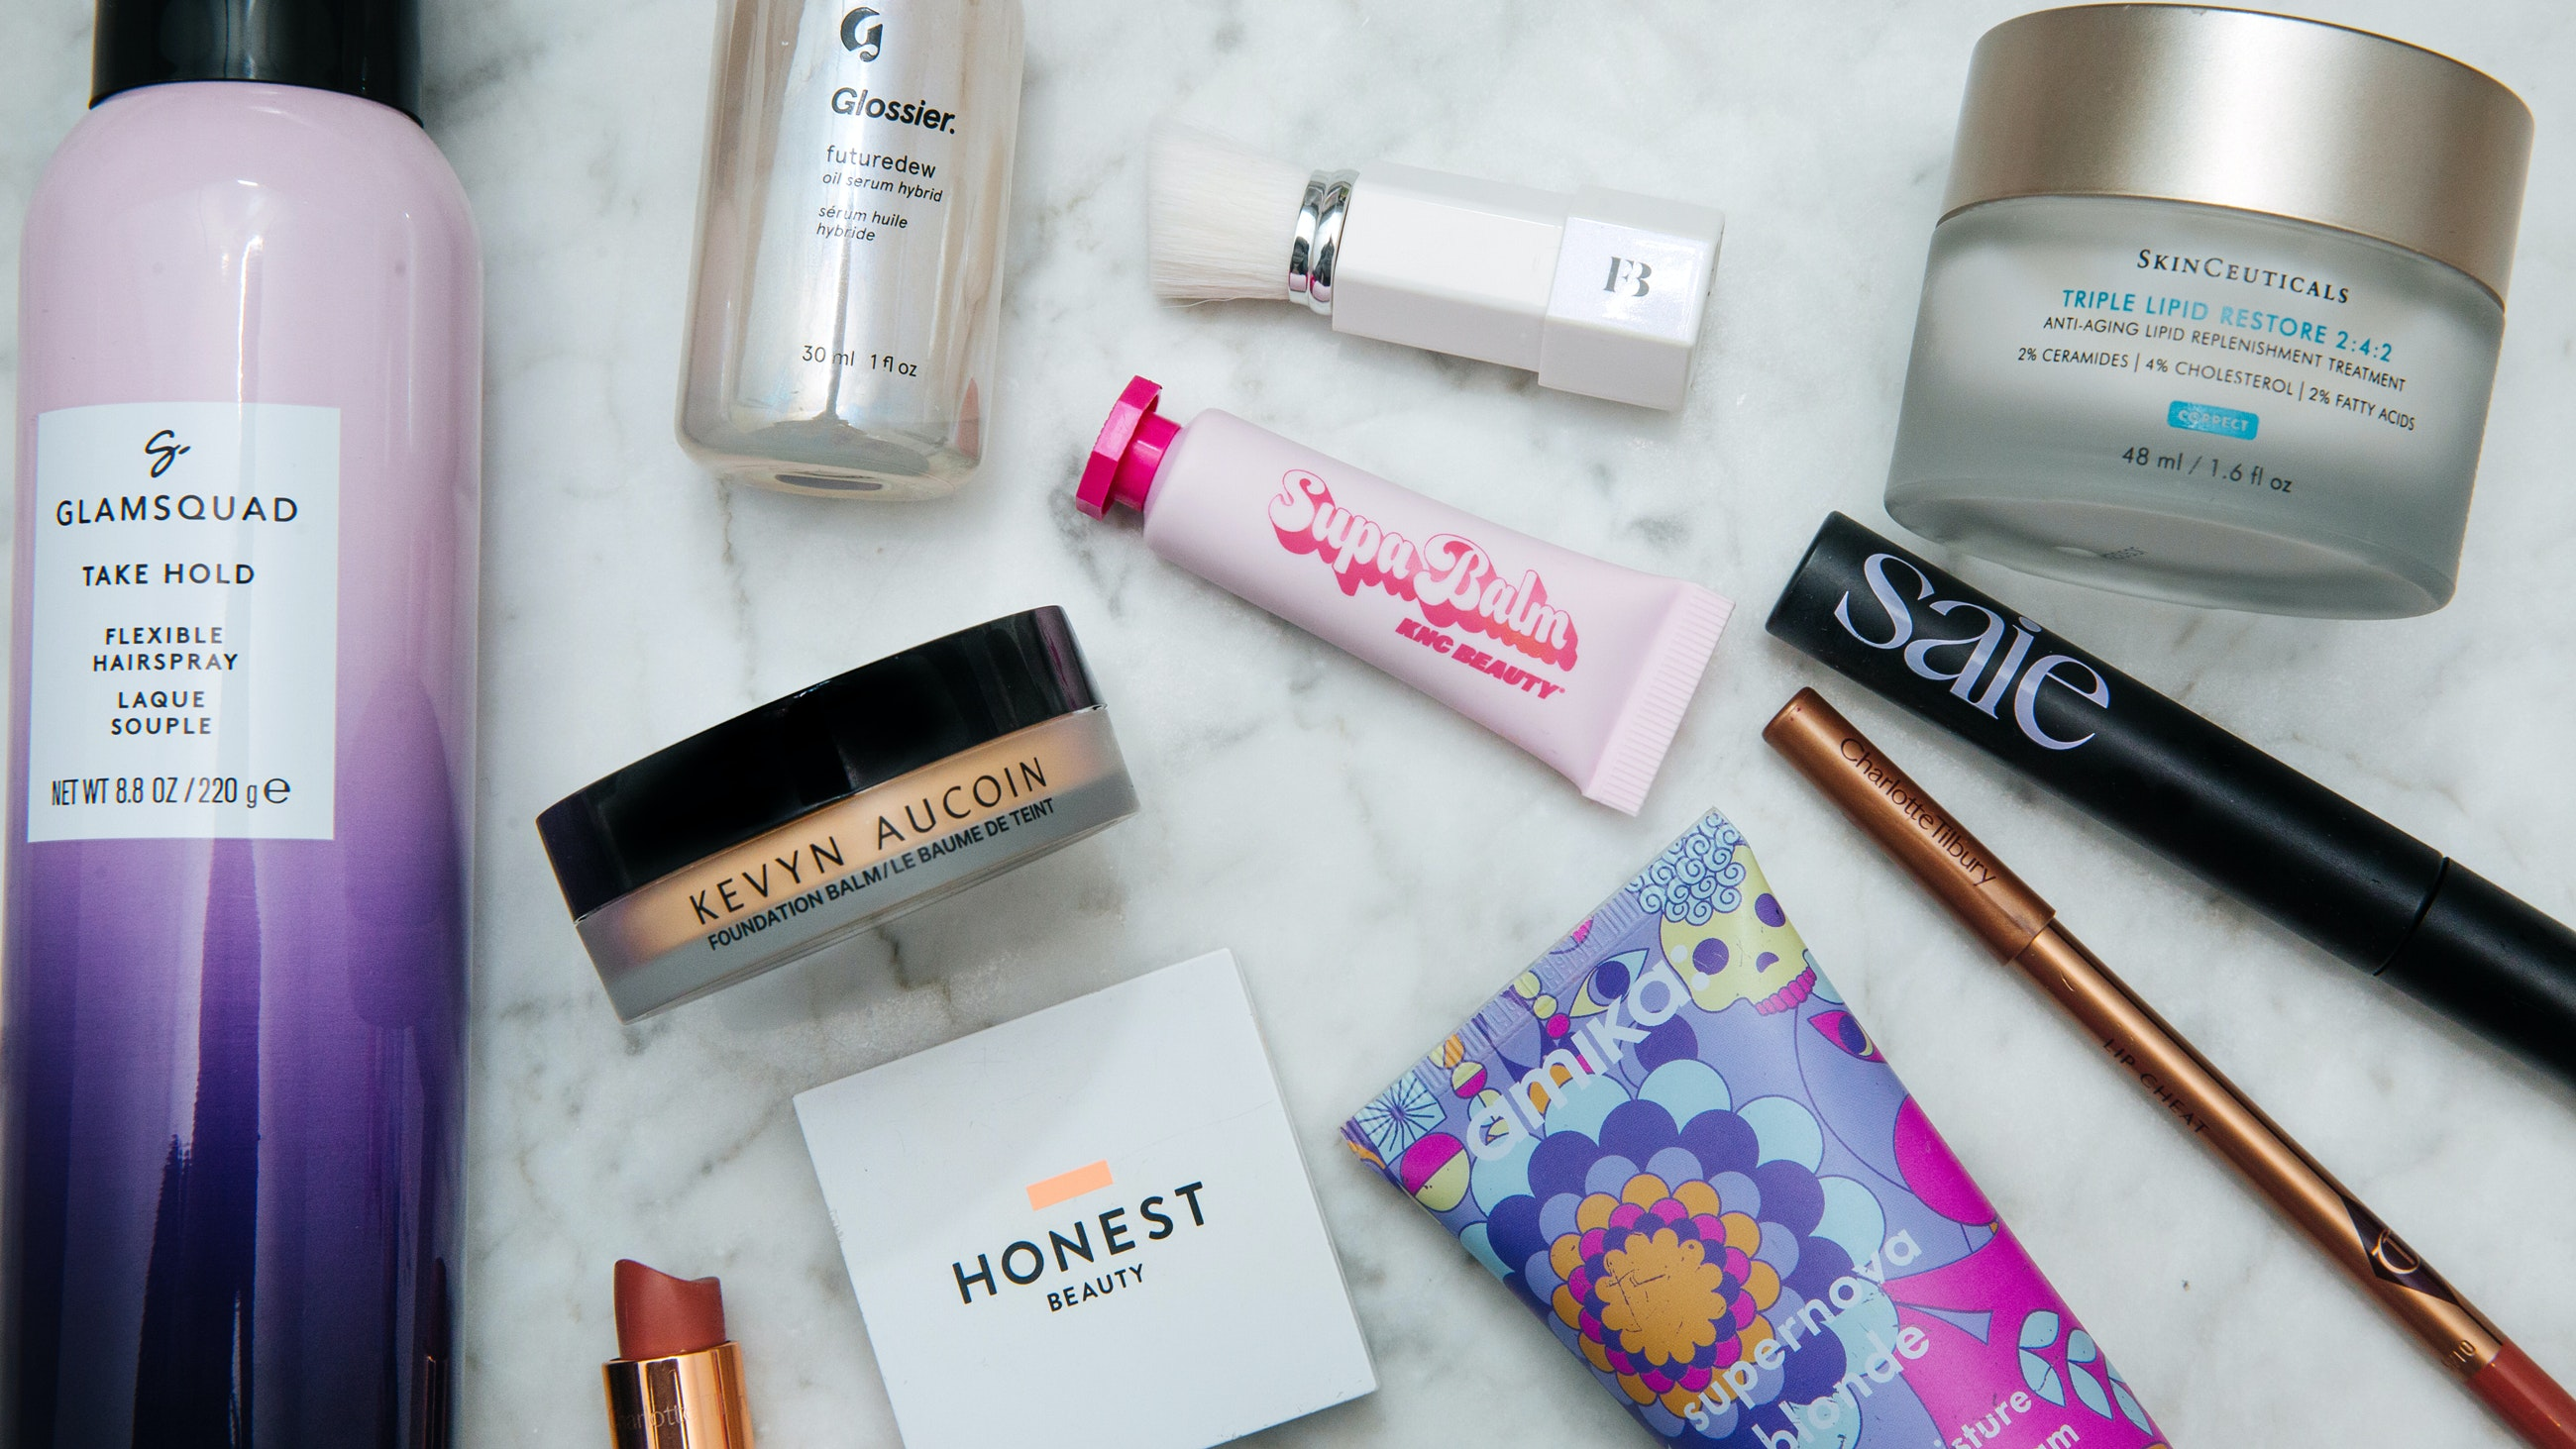 Carly Cardellino makeup routine products